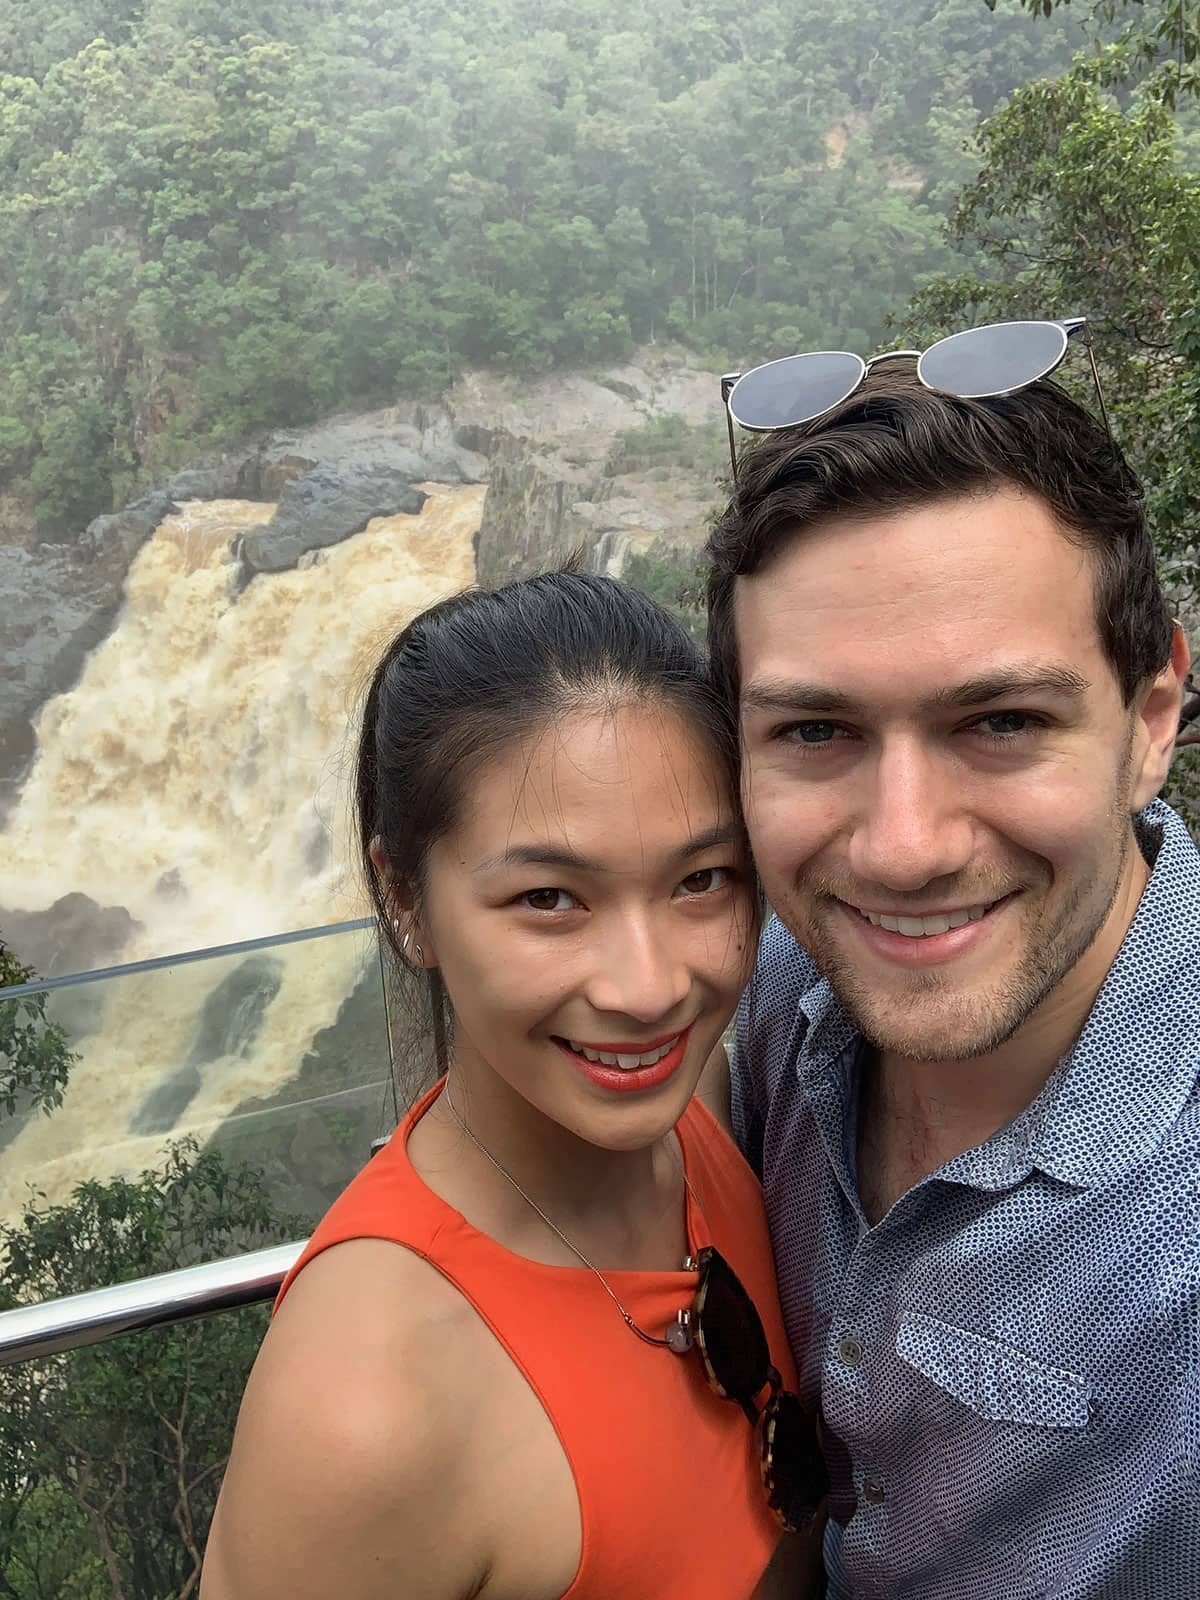 A selfie of a man and woman, smiling, with a murky waterfall behind them. It's quite misty. The woman is wearing an orange top and the man is wearing a patterned blue shirt.